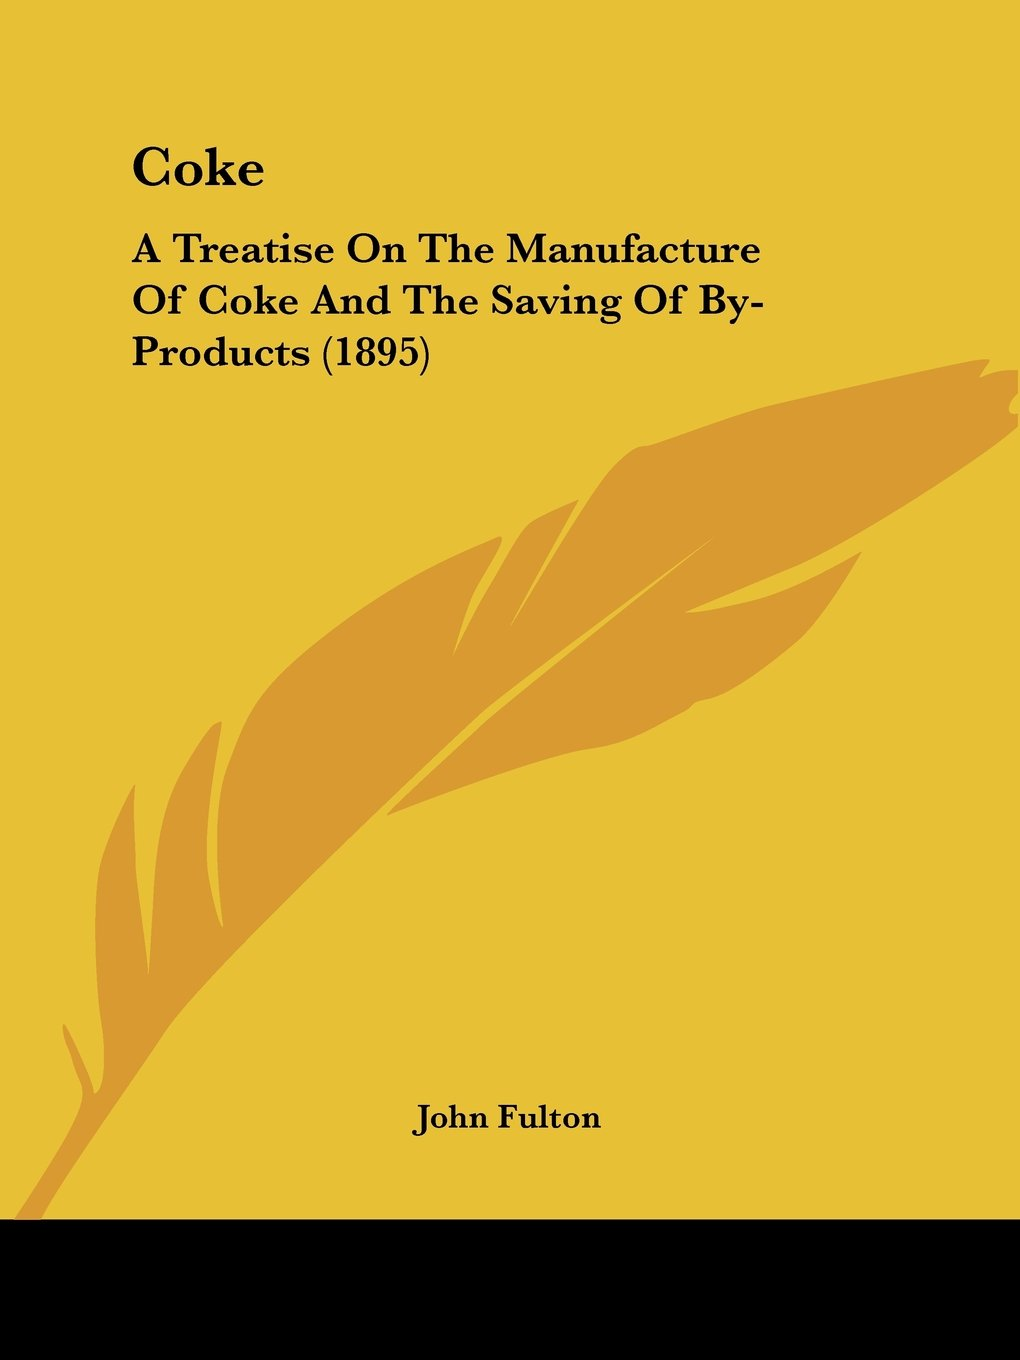 Coke: A Treatise On The Manufacture Of Coke And The Saving Of By-Products (1895) ebook